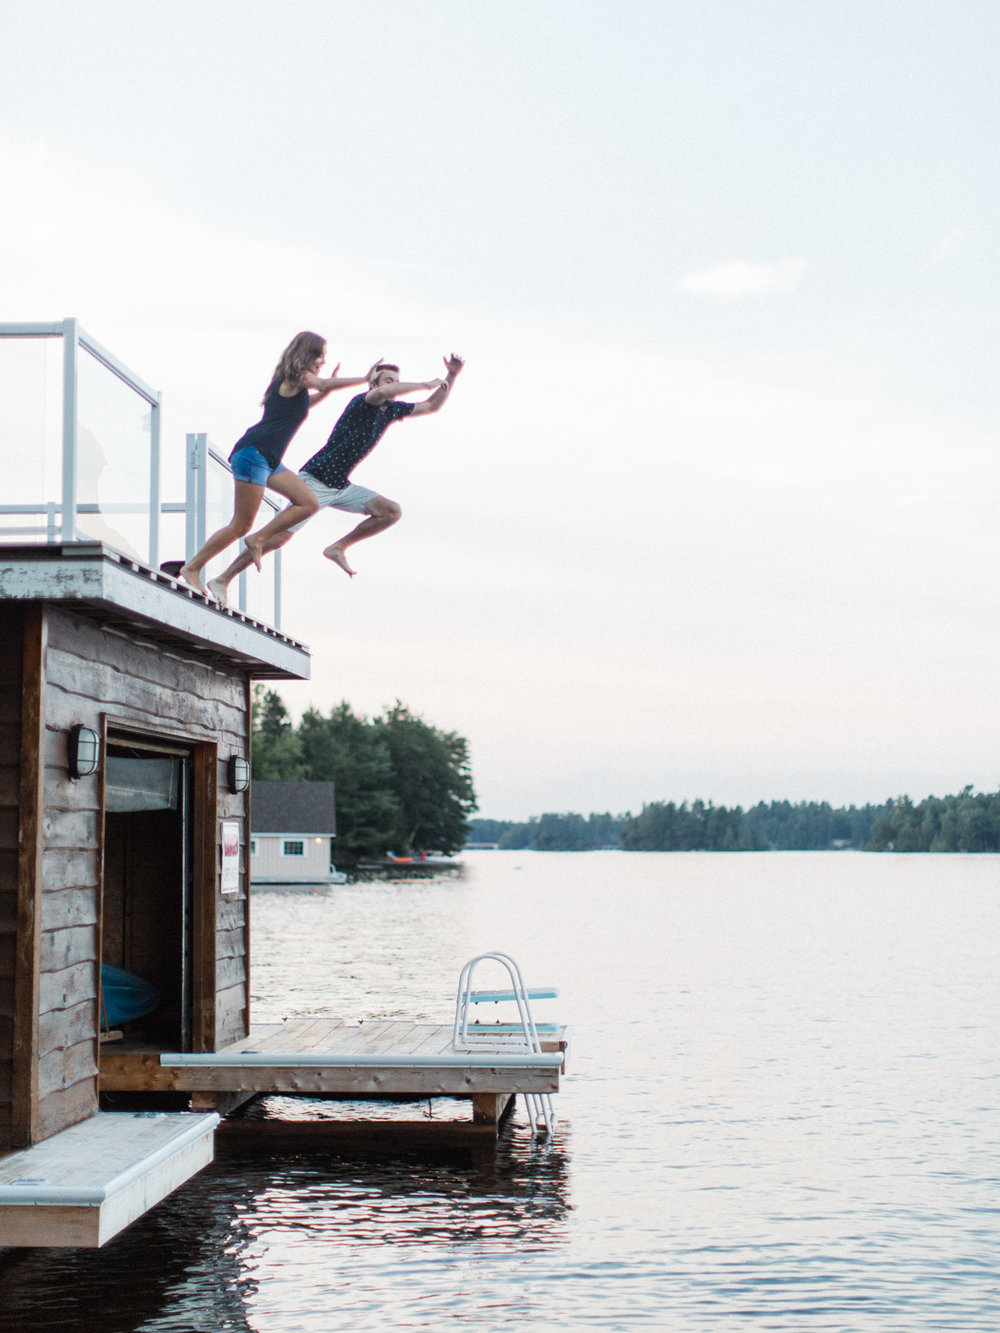 muskoka-wedding-photographer-adventurous-couples-engagement-session-lake-107.jpg